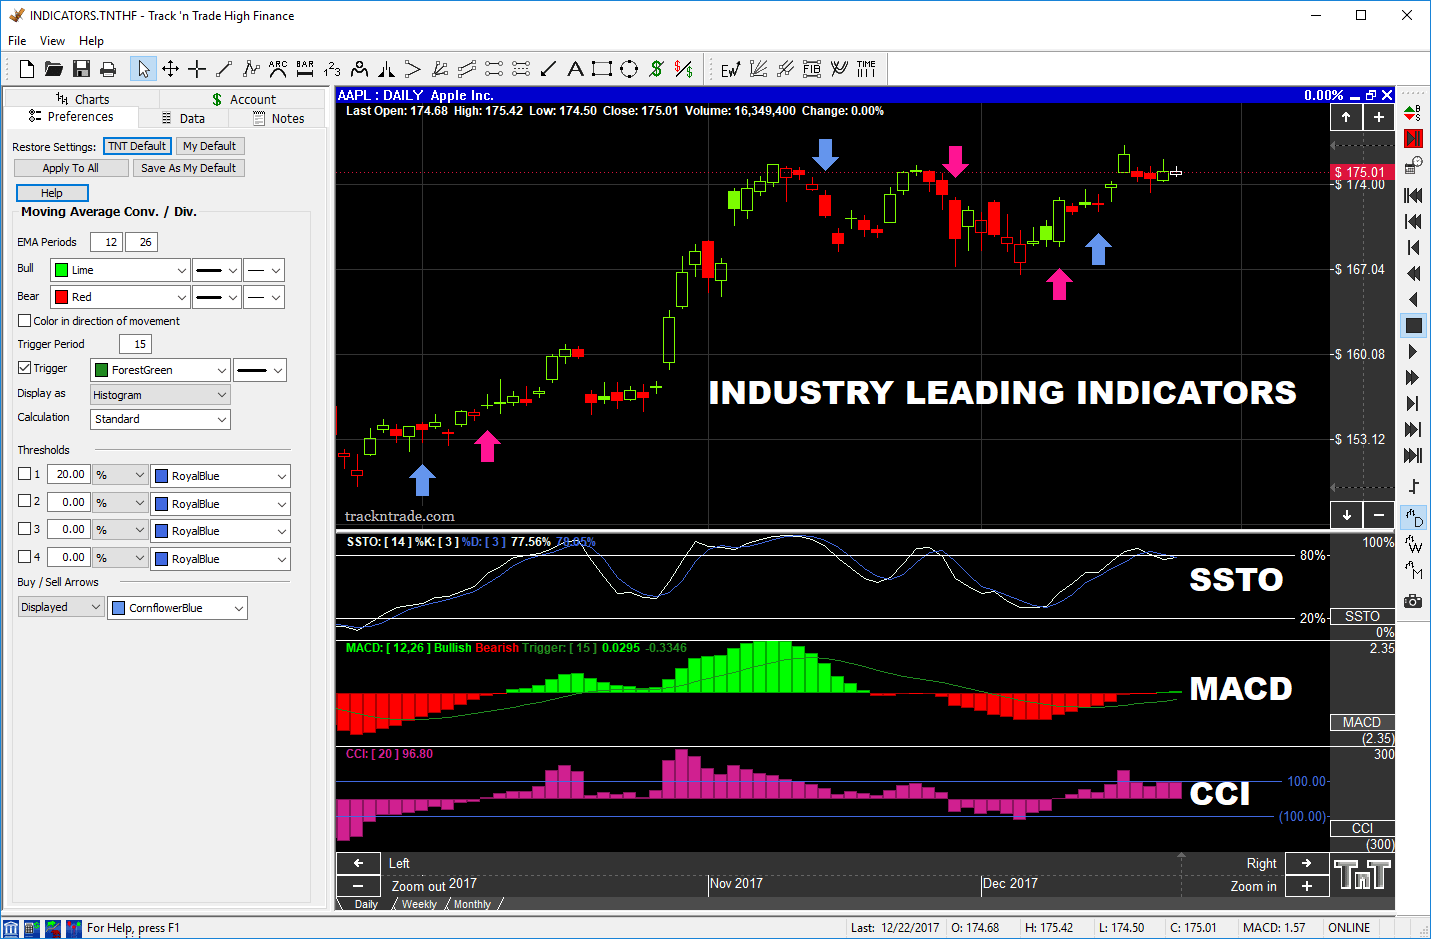 Indicators in trading stocks